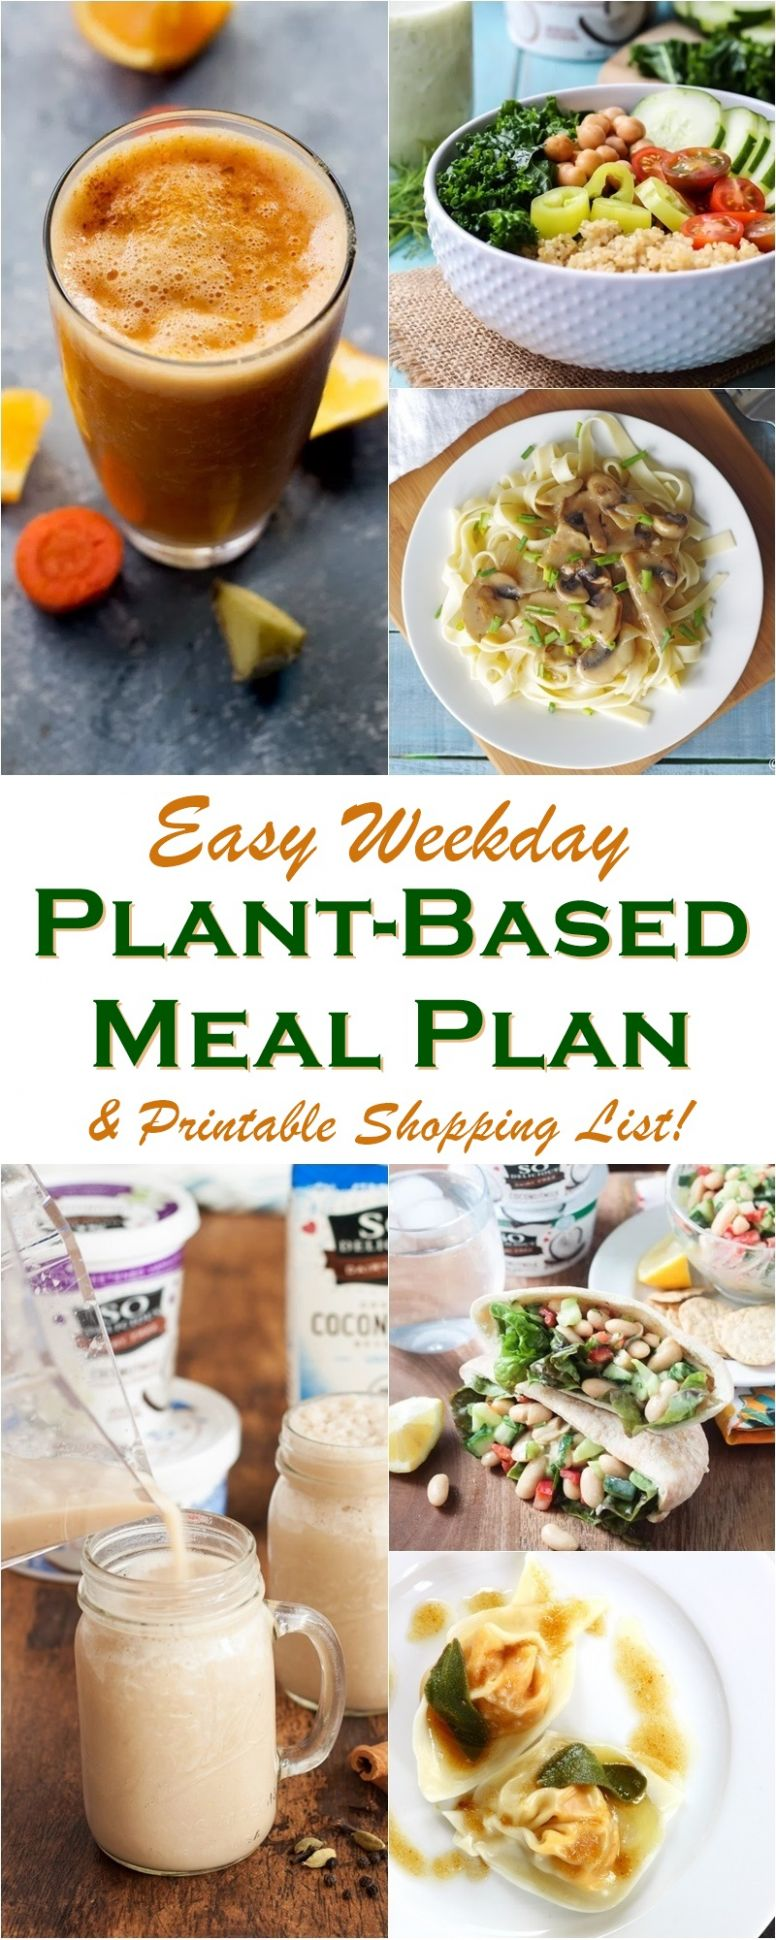 Easy Weekday Plant-Based Meal Plan + Shopping List